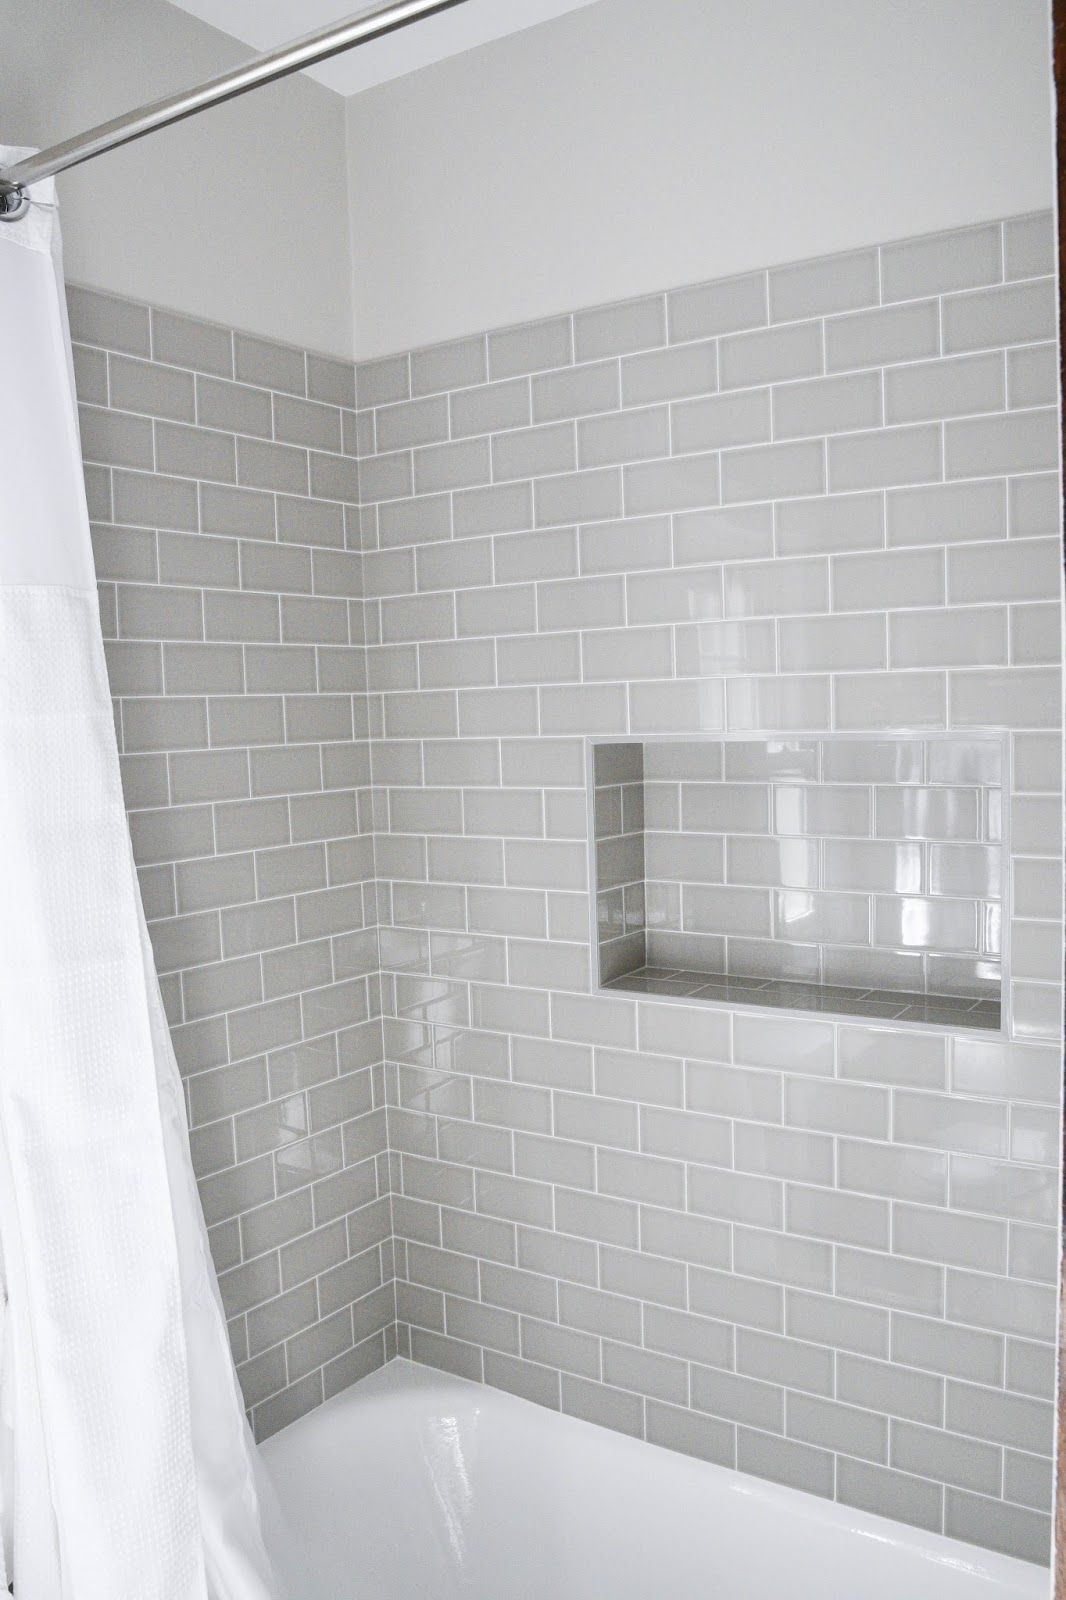 grey subway tile bathroom modern meets traditional styled bathroom subway tile 18613